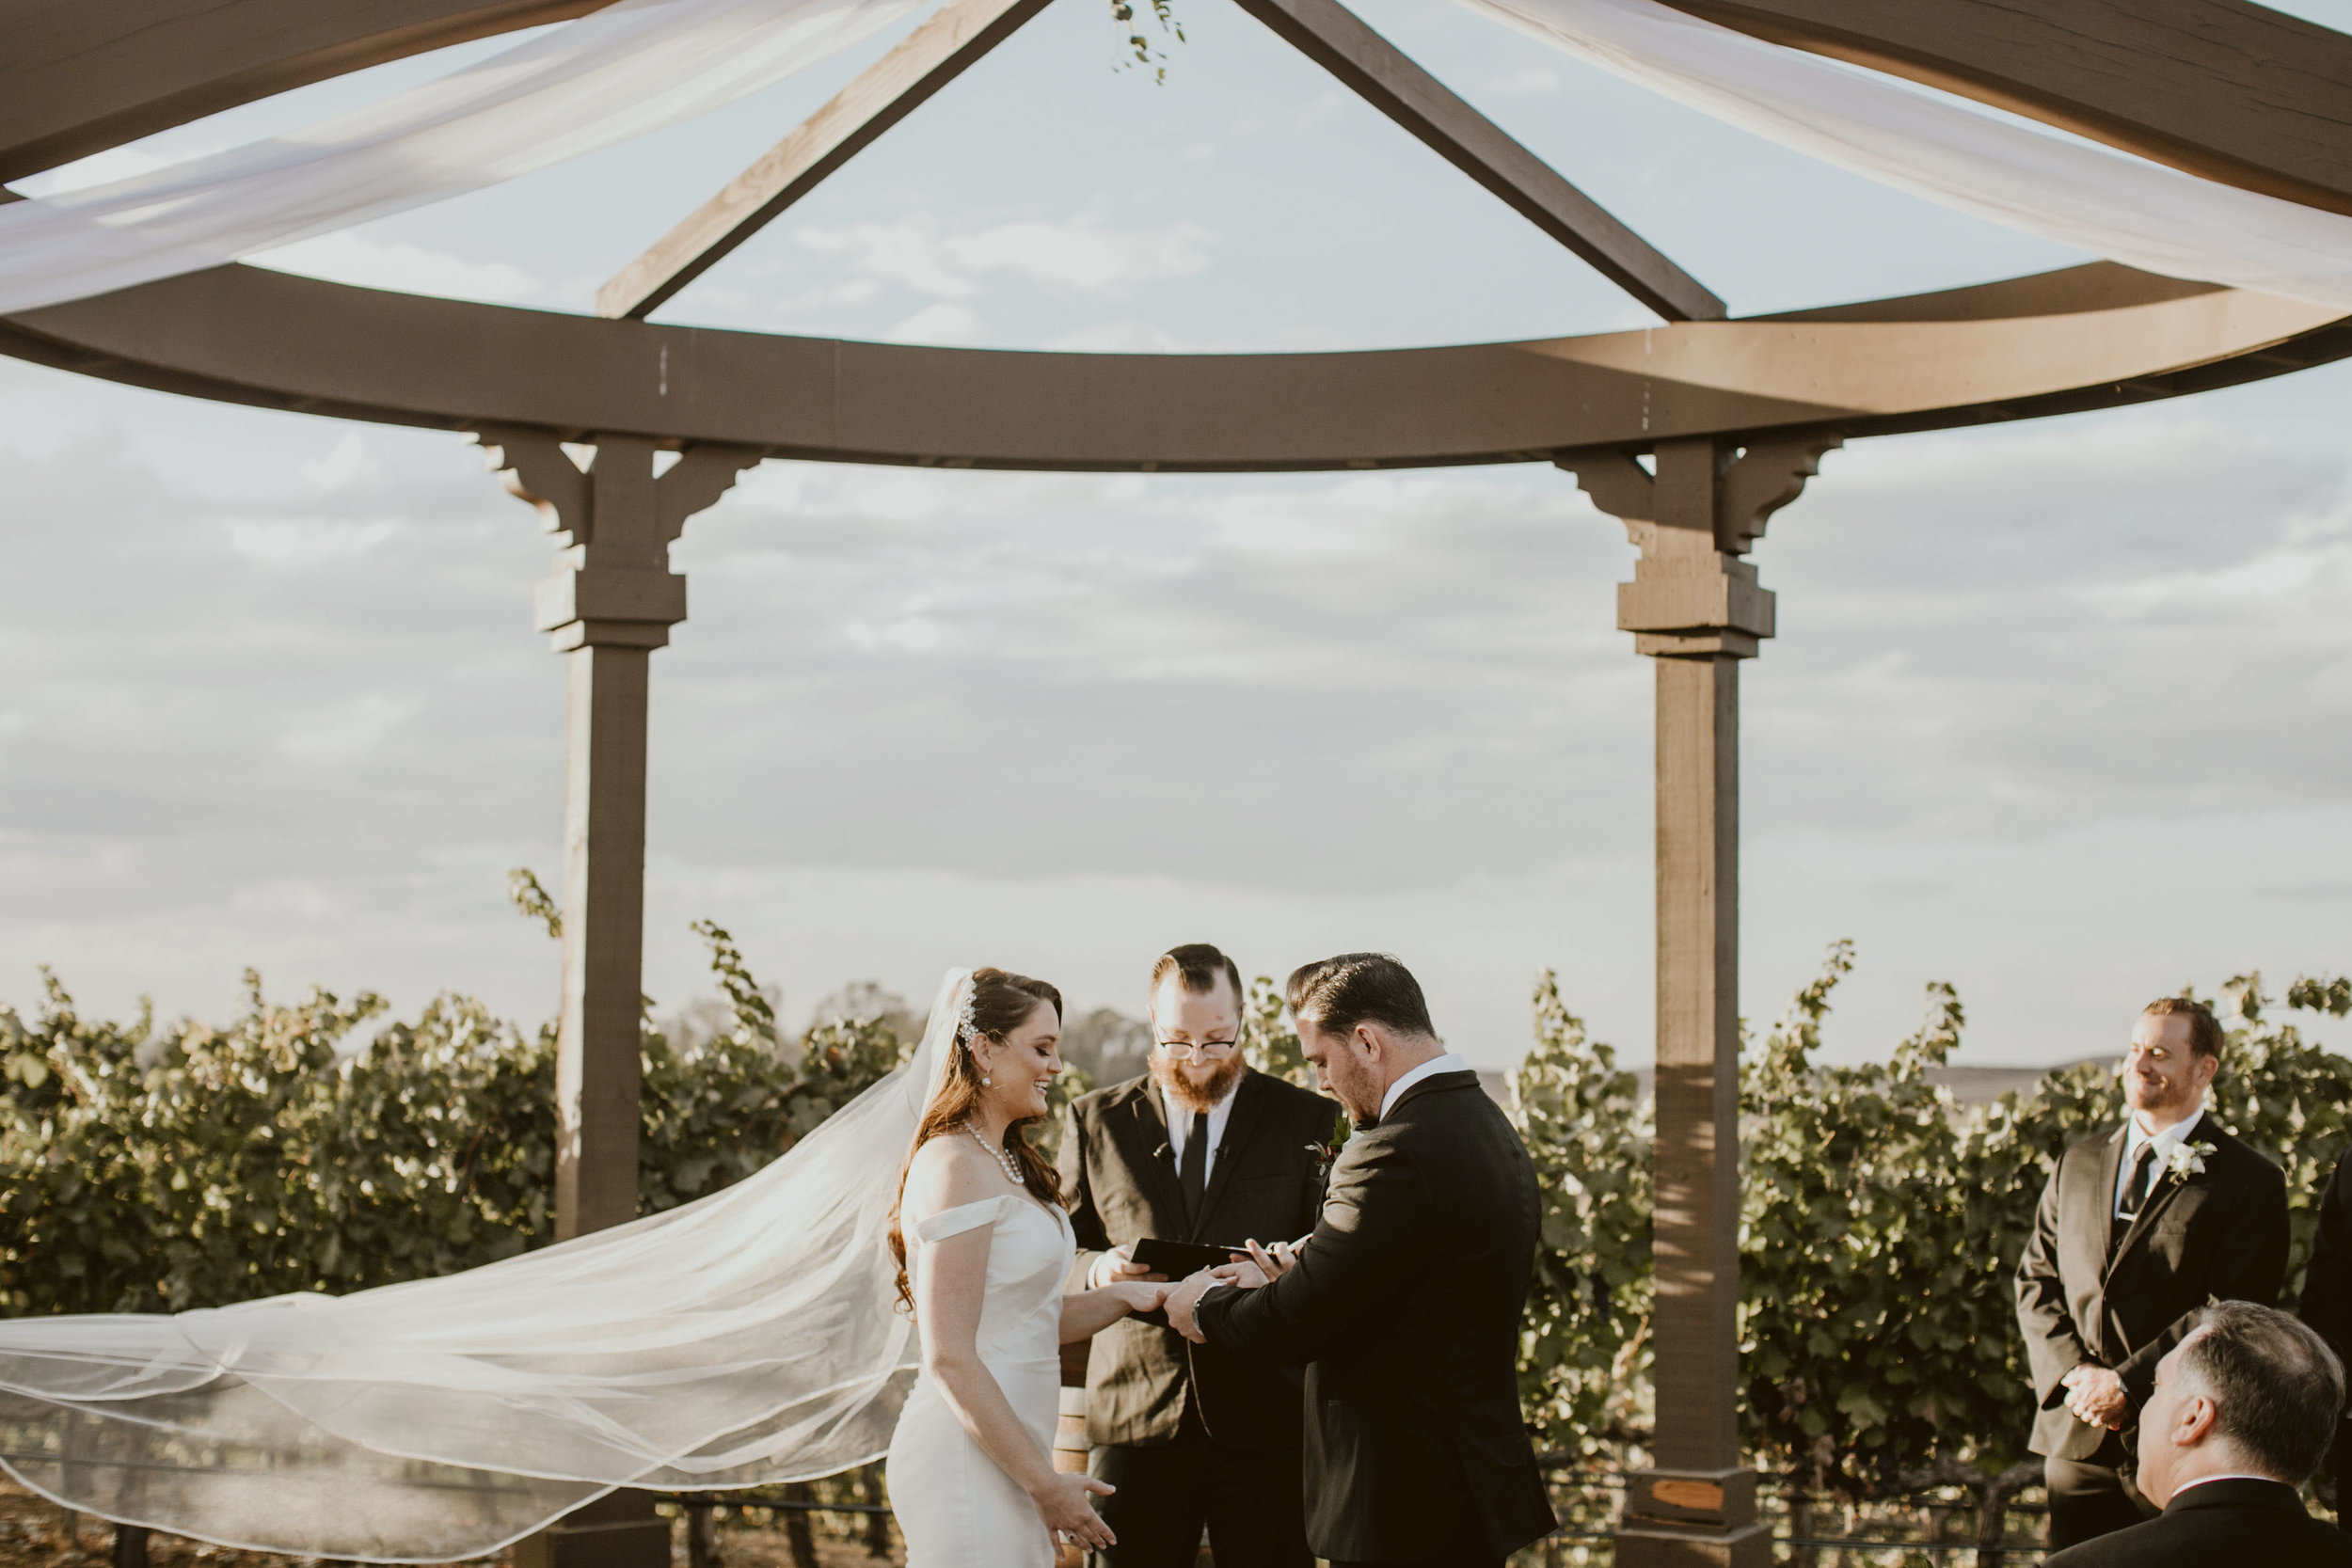 Domenica Beauty _ Hair and Makeup Artist _Wedding _ Temecula, CA _ Catherine and Darryl _ 21.JPG